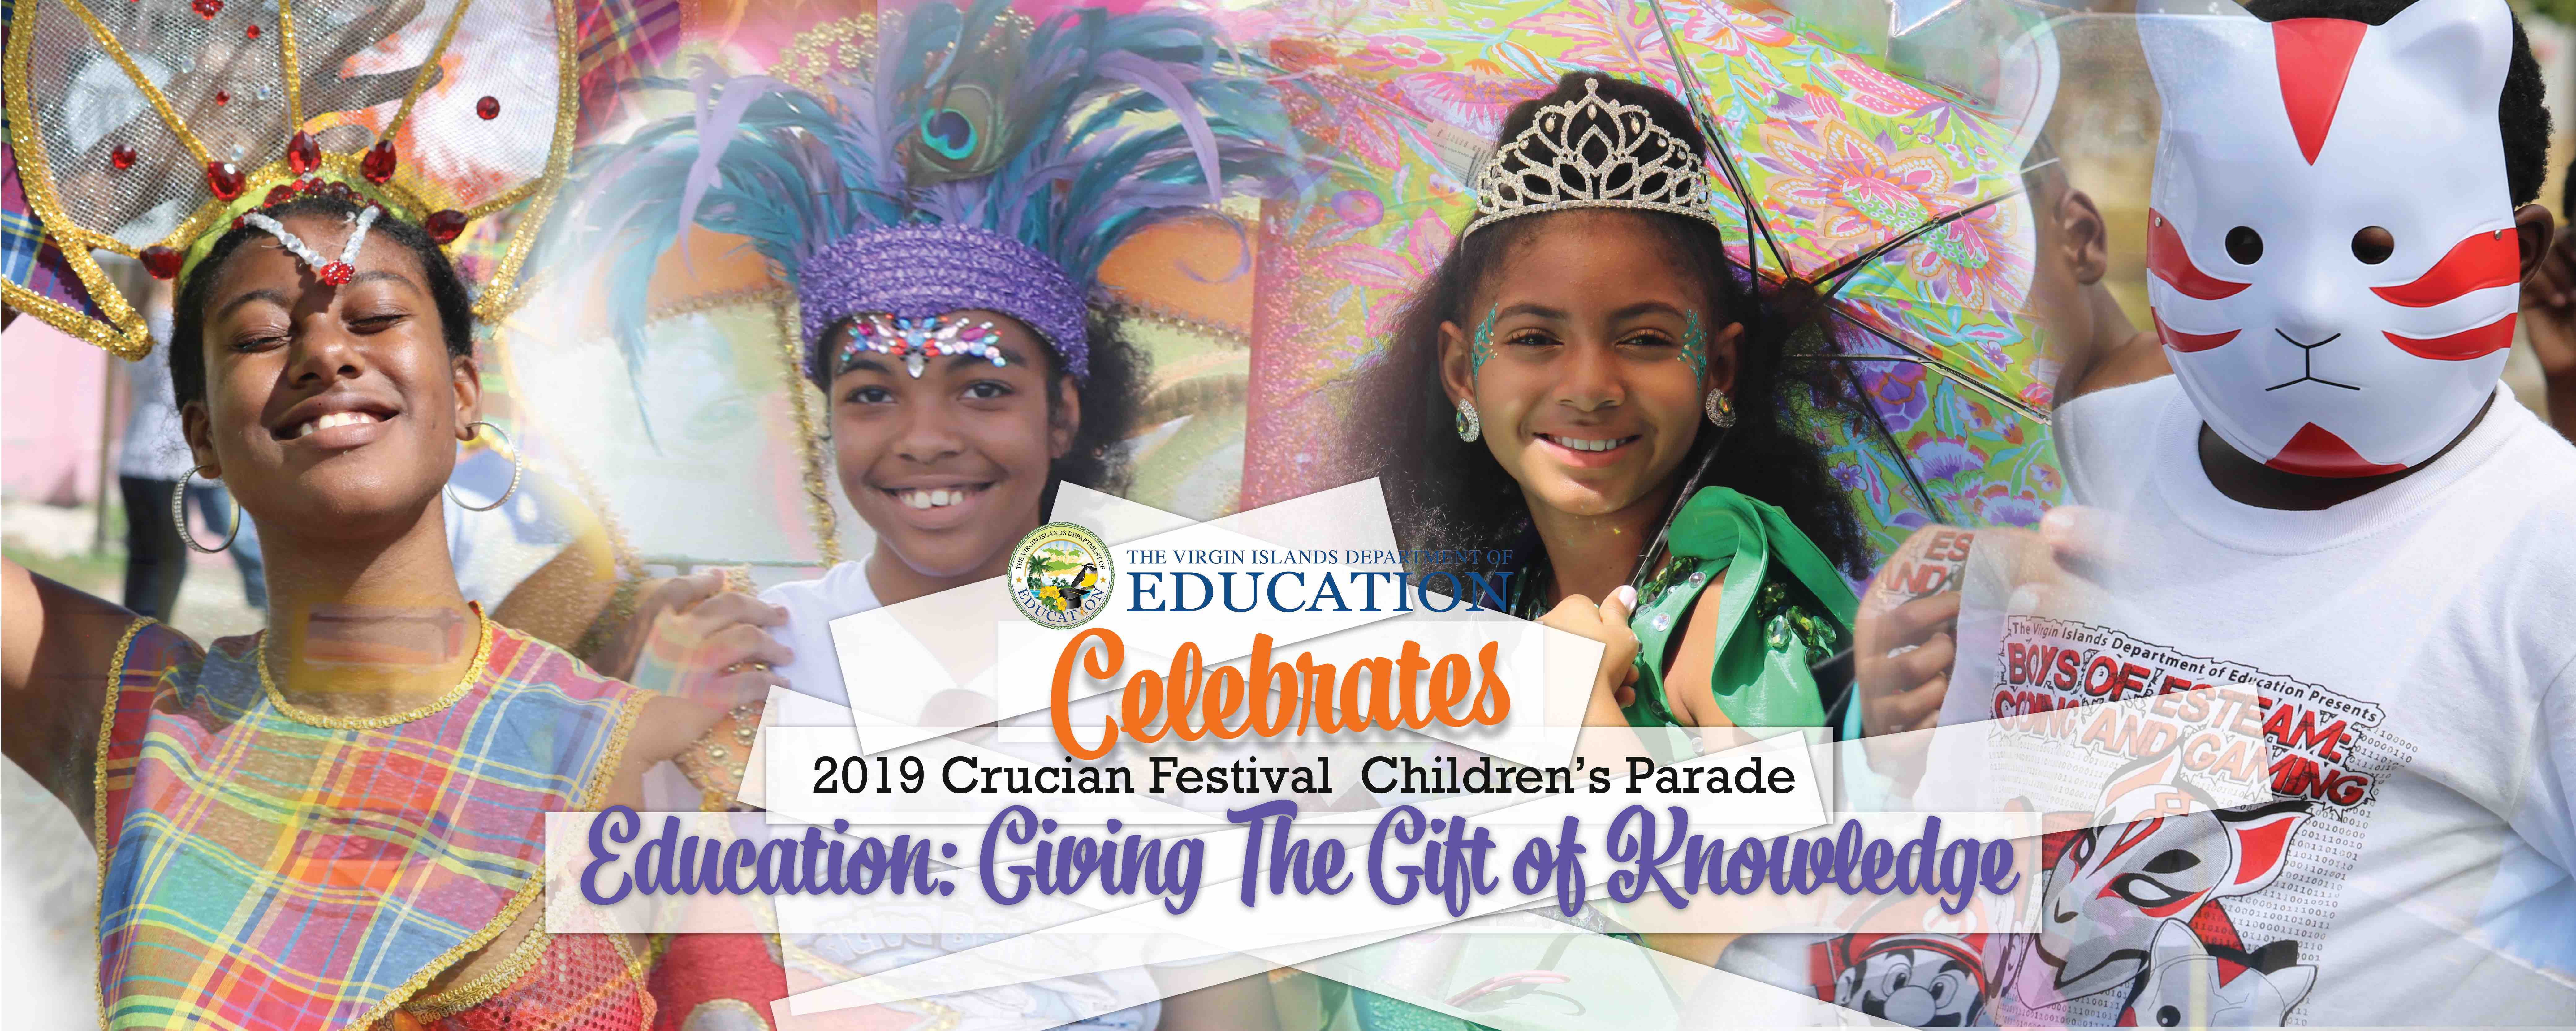 """The Gift of Knowledge"" fills 2019 St. Croix Festival Children's Parade"